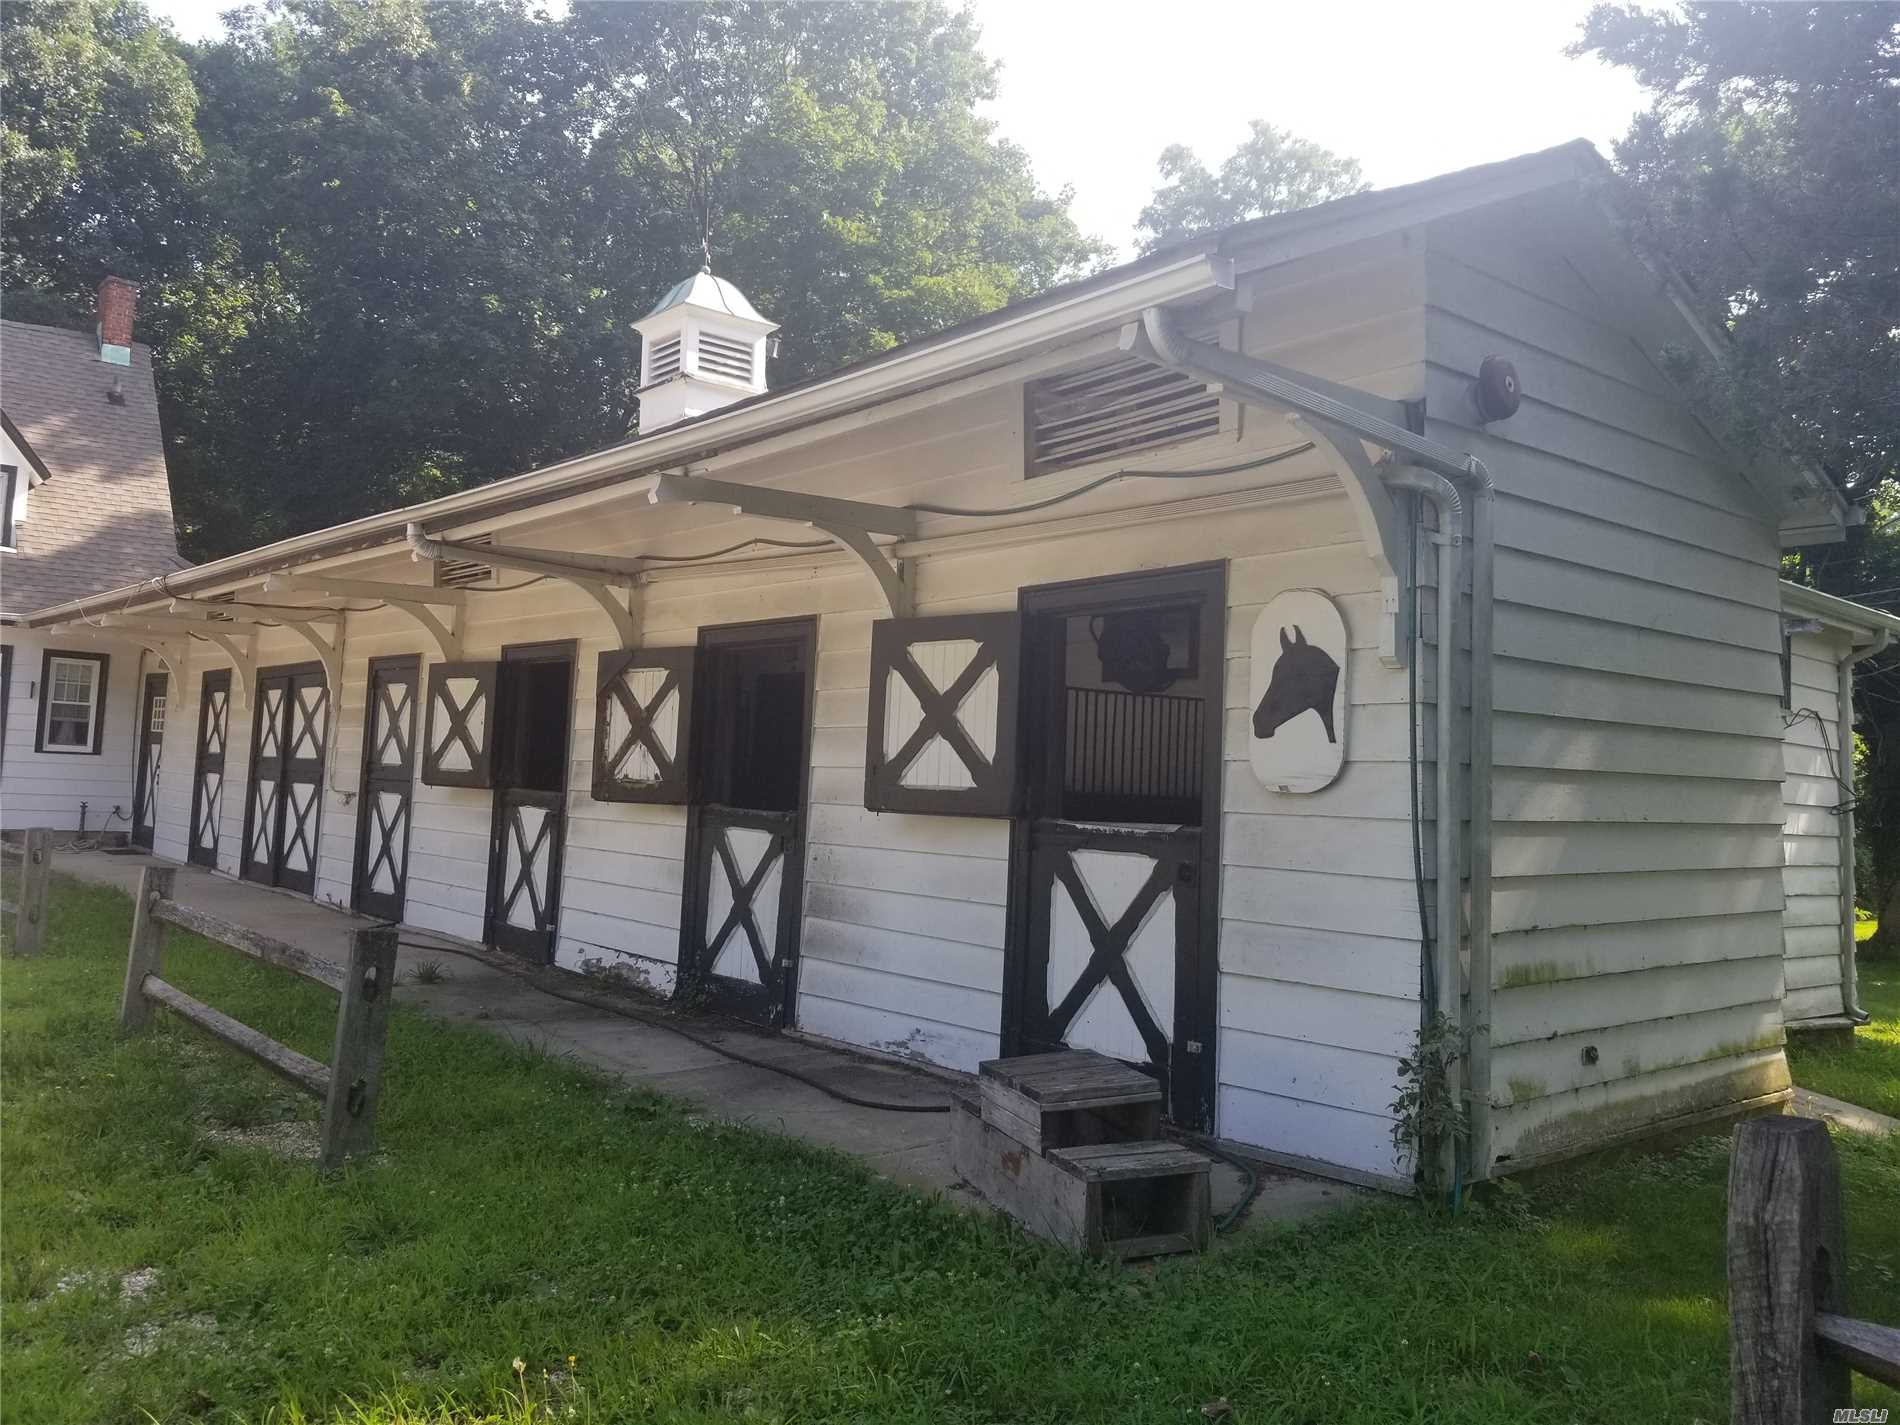 Unique Opportunity Inside 500+ Acre Muttontown Preserve - Barn With 5 Horse Stable And Use Of Paddock - No Smoking! $1, 750 Includes Heat And Electric.